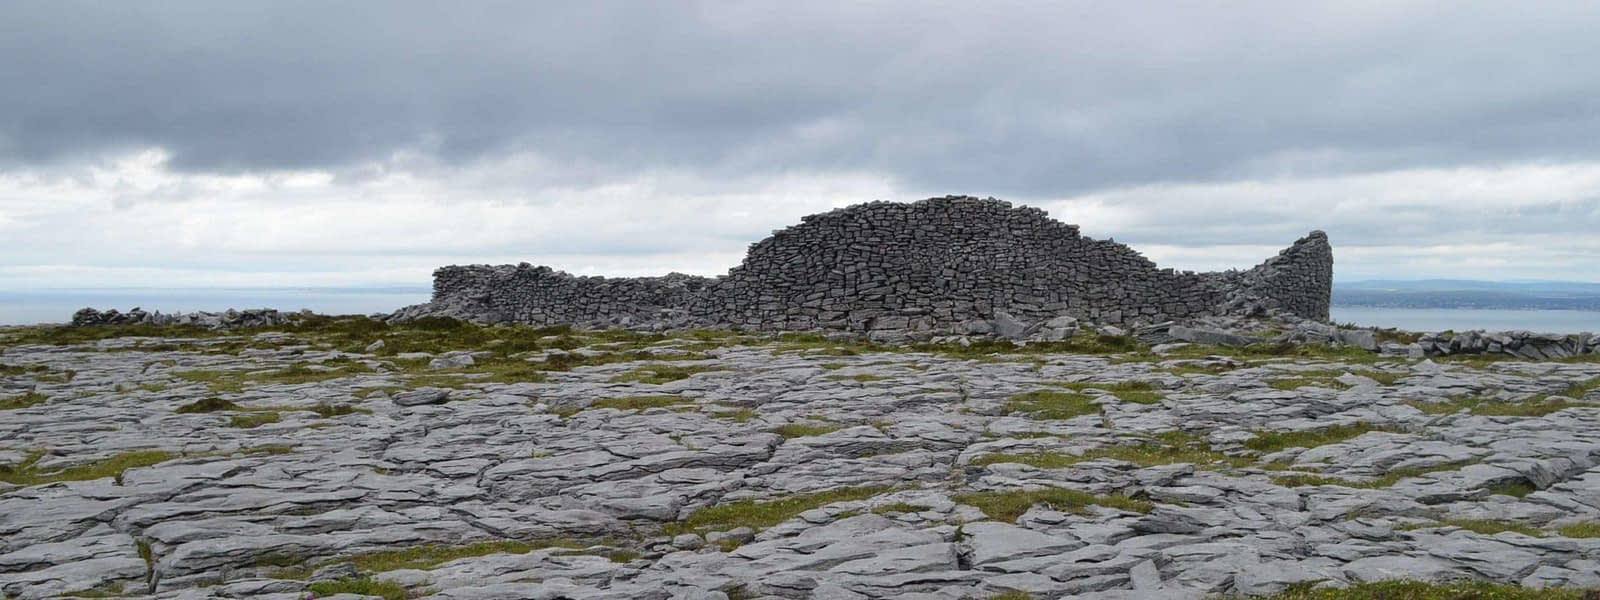 Ringforts in The Burren